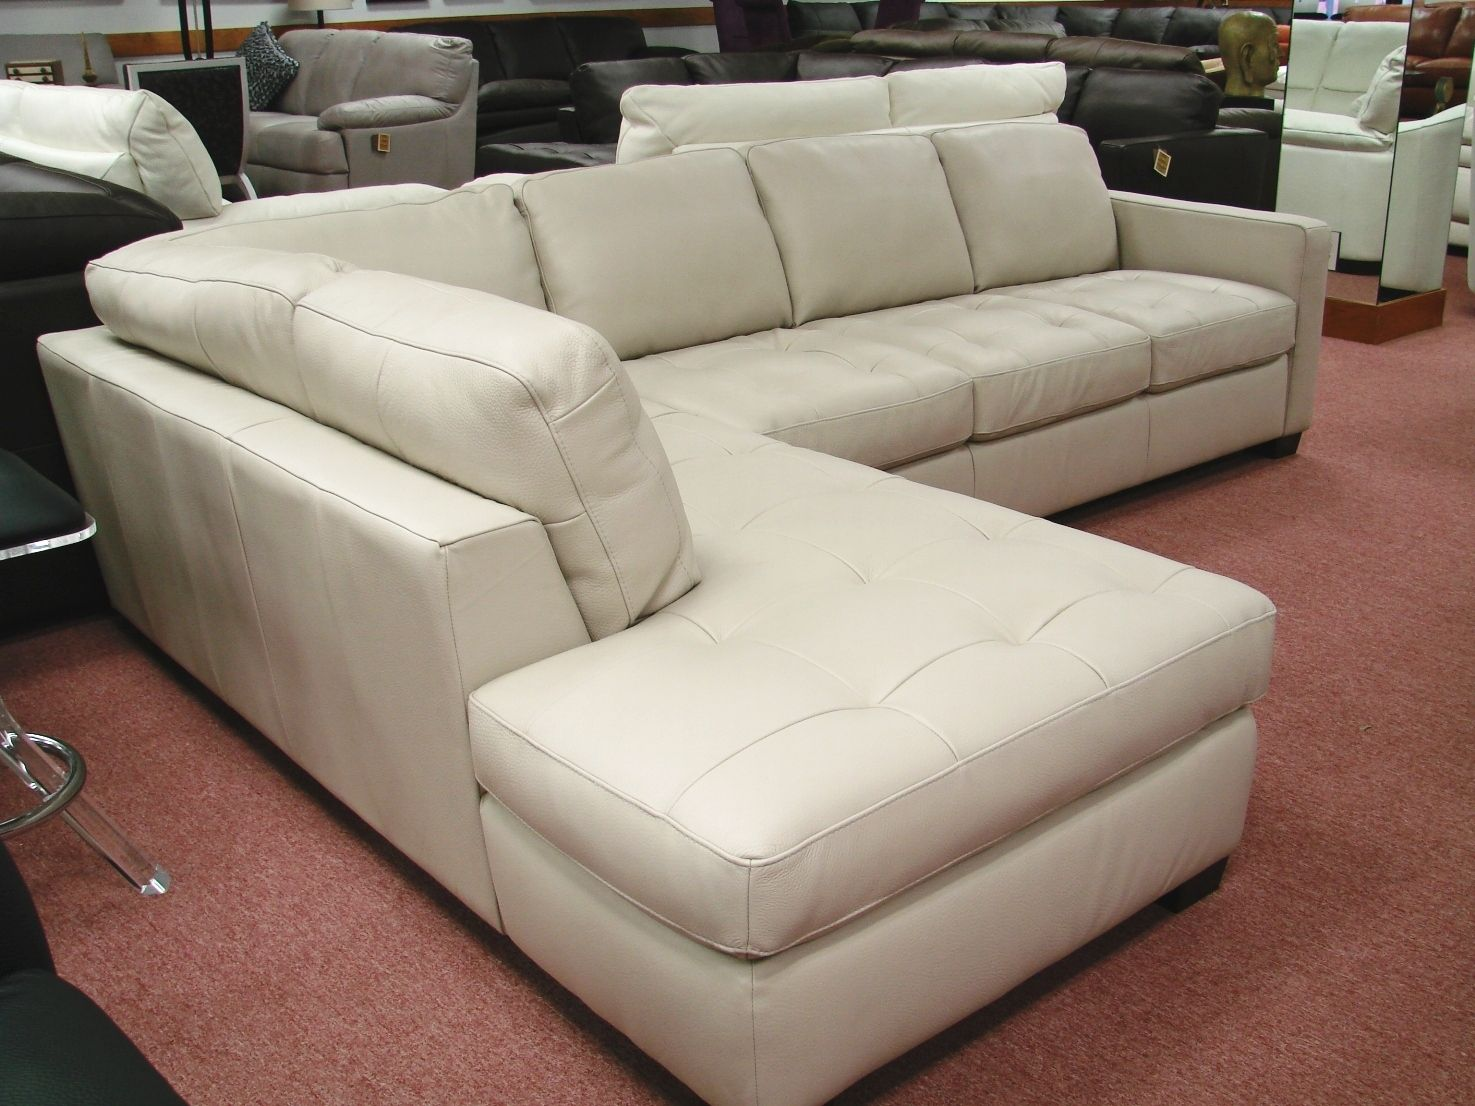 Leather Sectional Sofa Sale Traditional Style Natuzzi Sectional Sofa Moooi Brand Home Decor